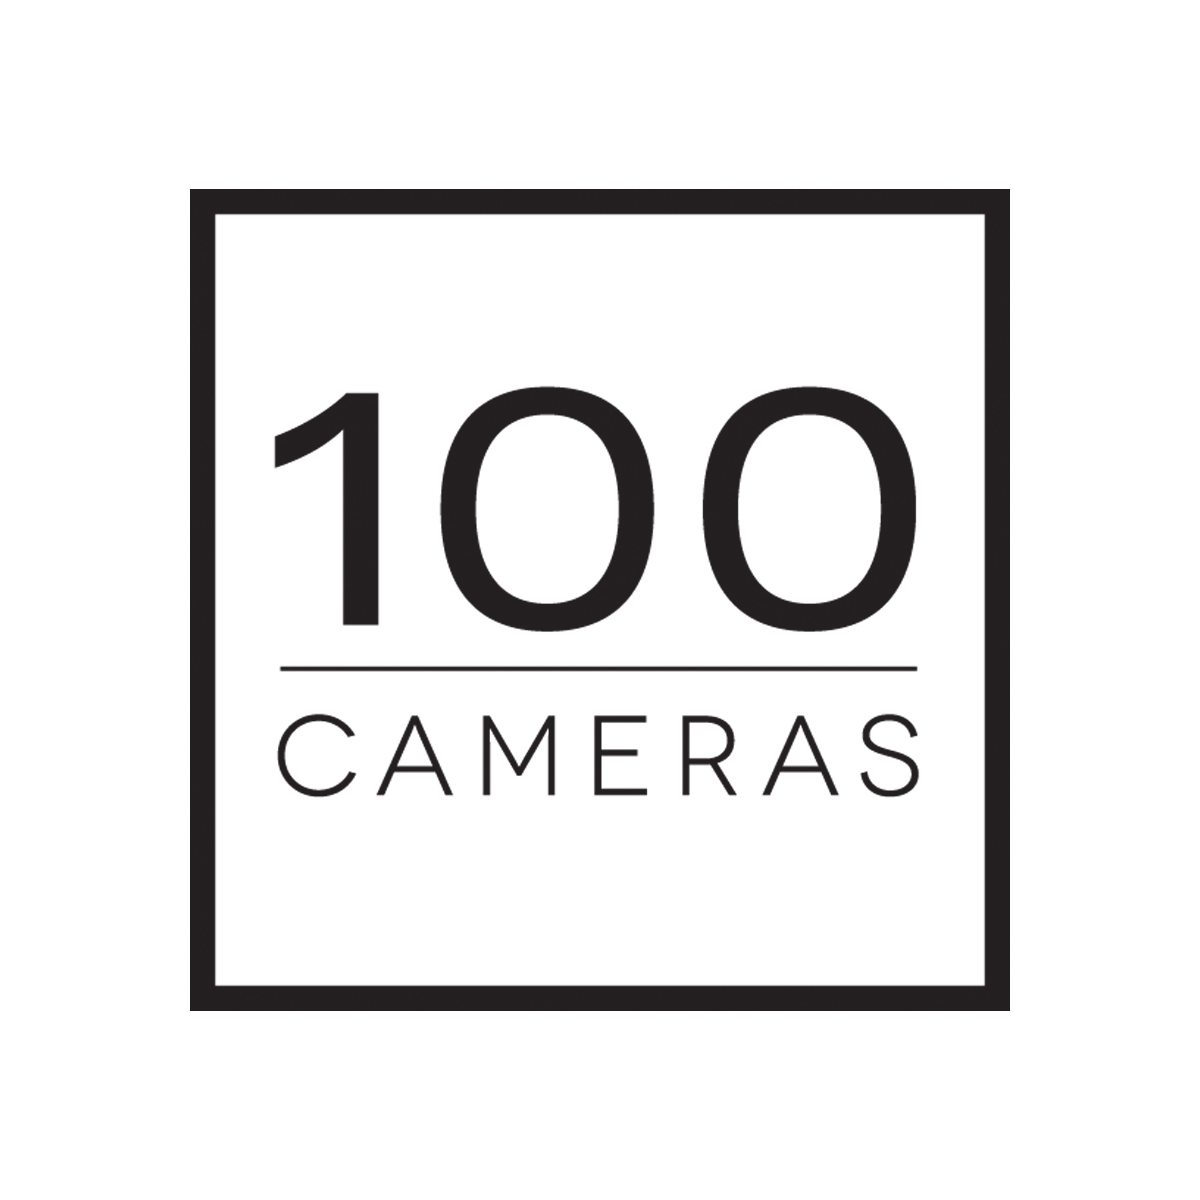 WorldPerspectiveDay_100camerasPartnerLogo.jpg